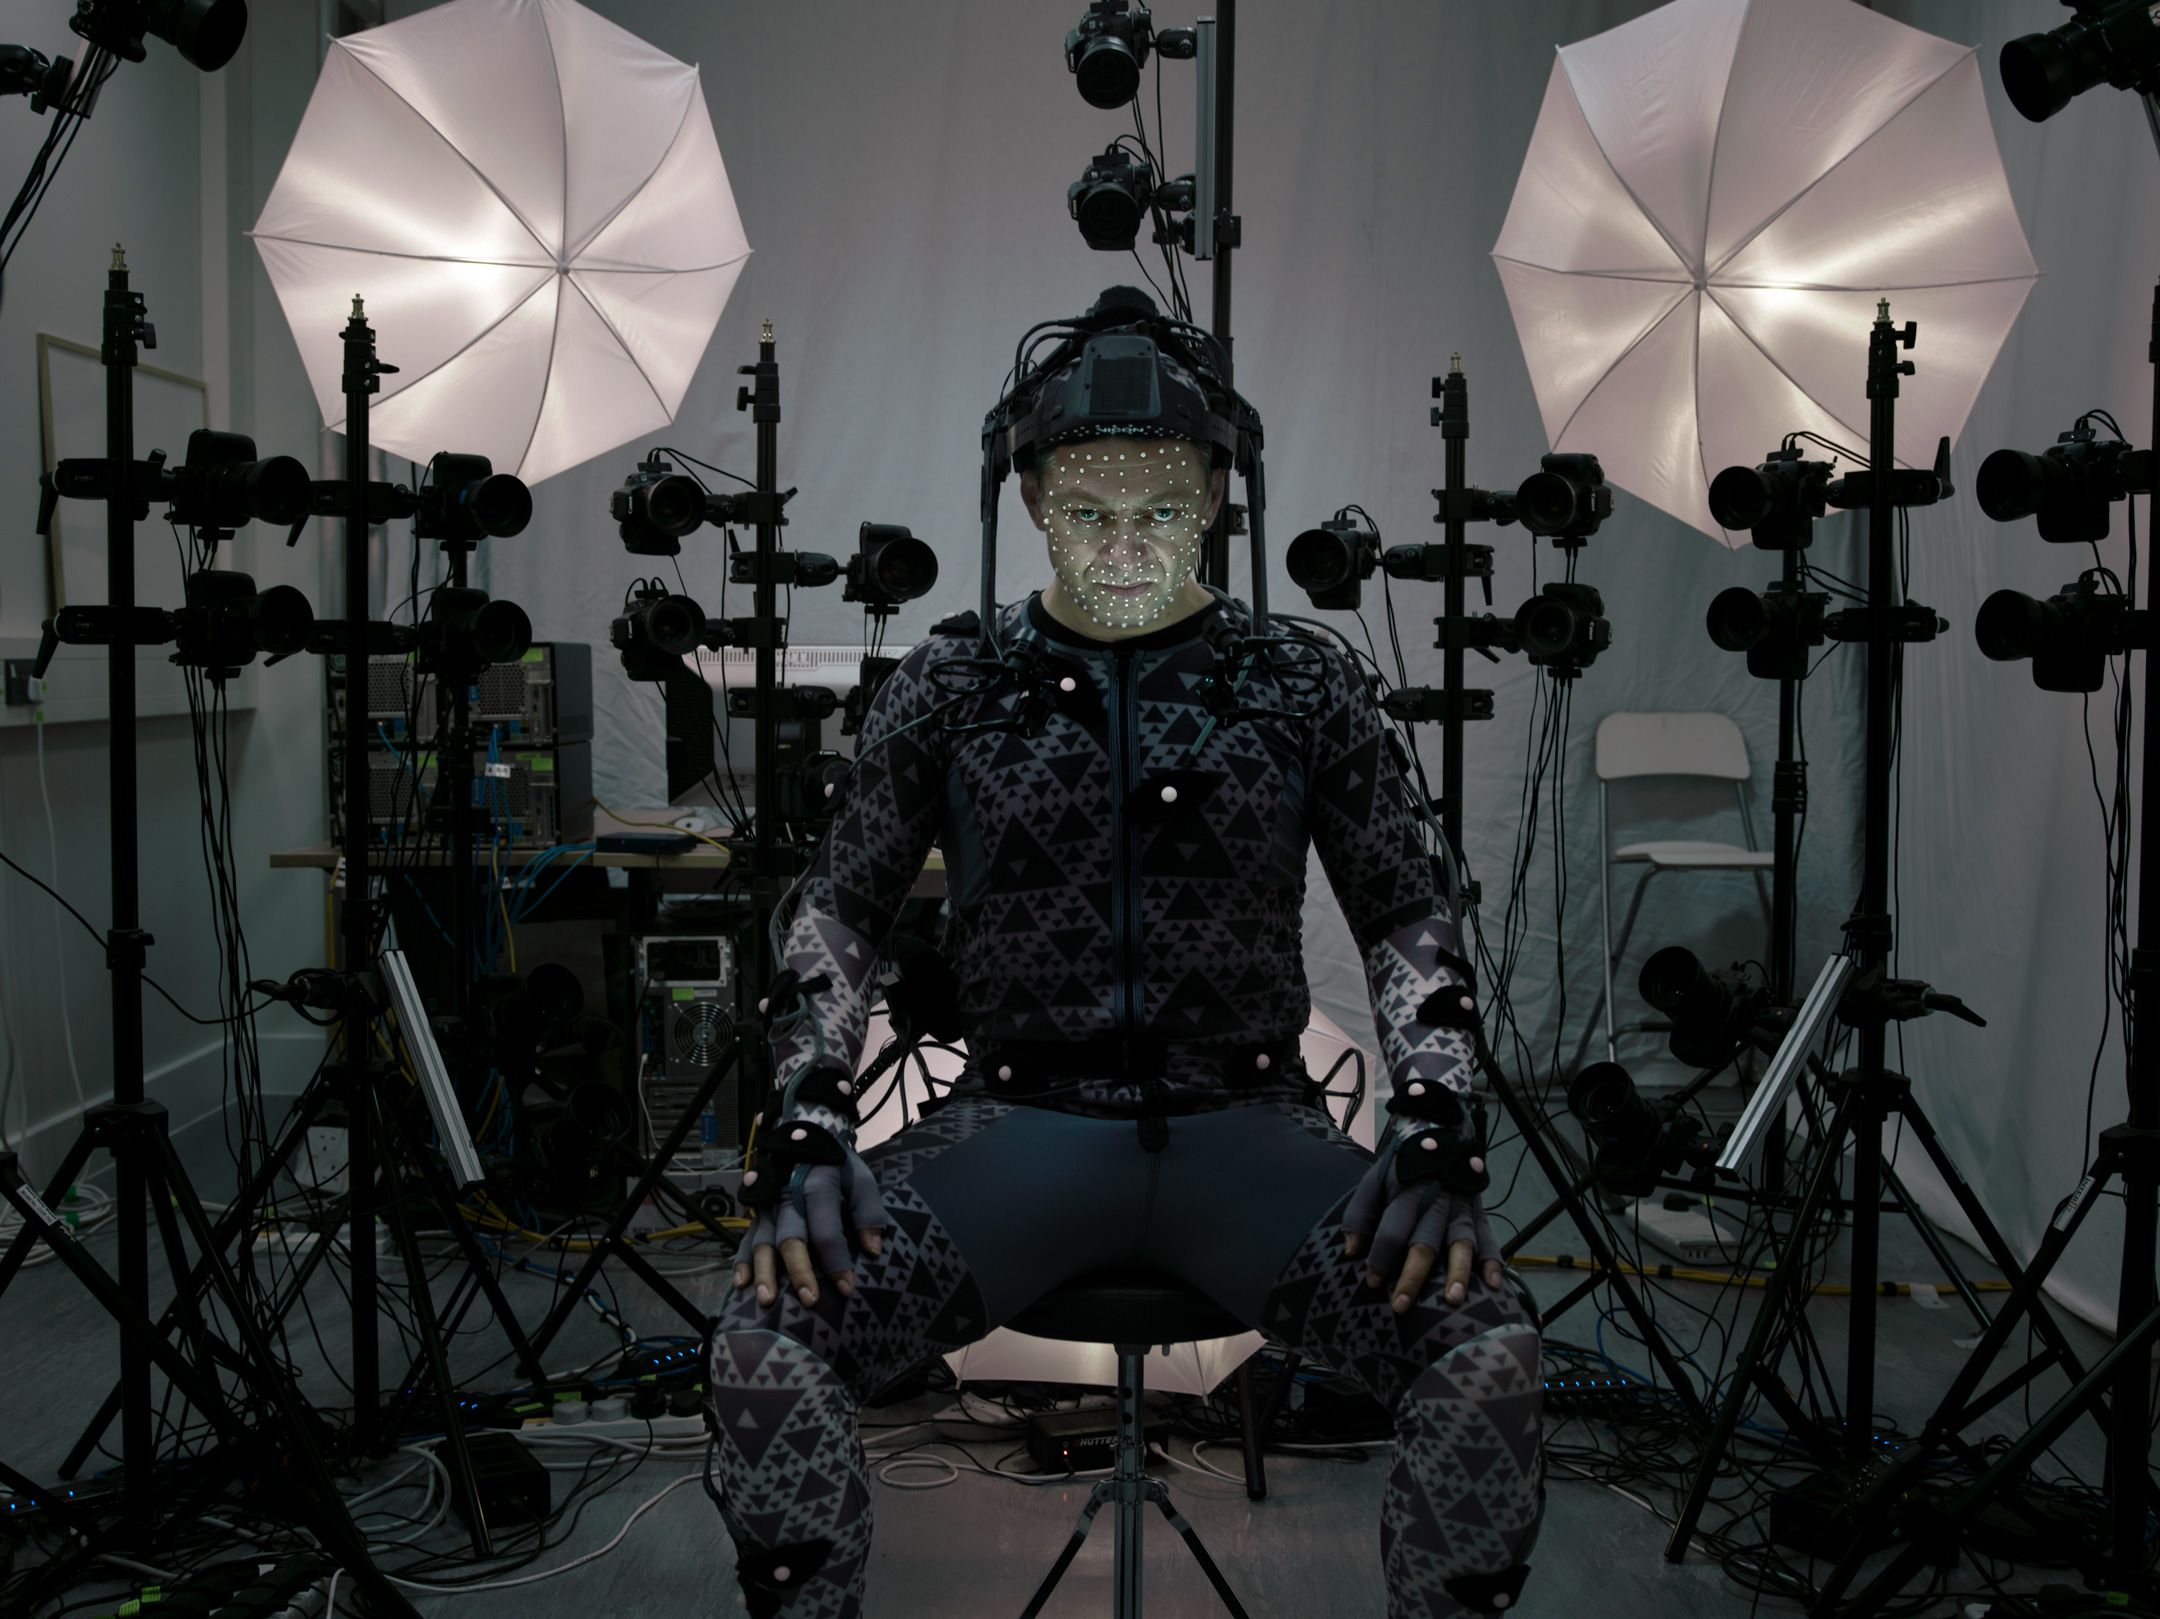 Andy Serkis incorpora seu personagem em Star Wars / Annie Leibovitz/Vanity Fair